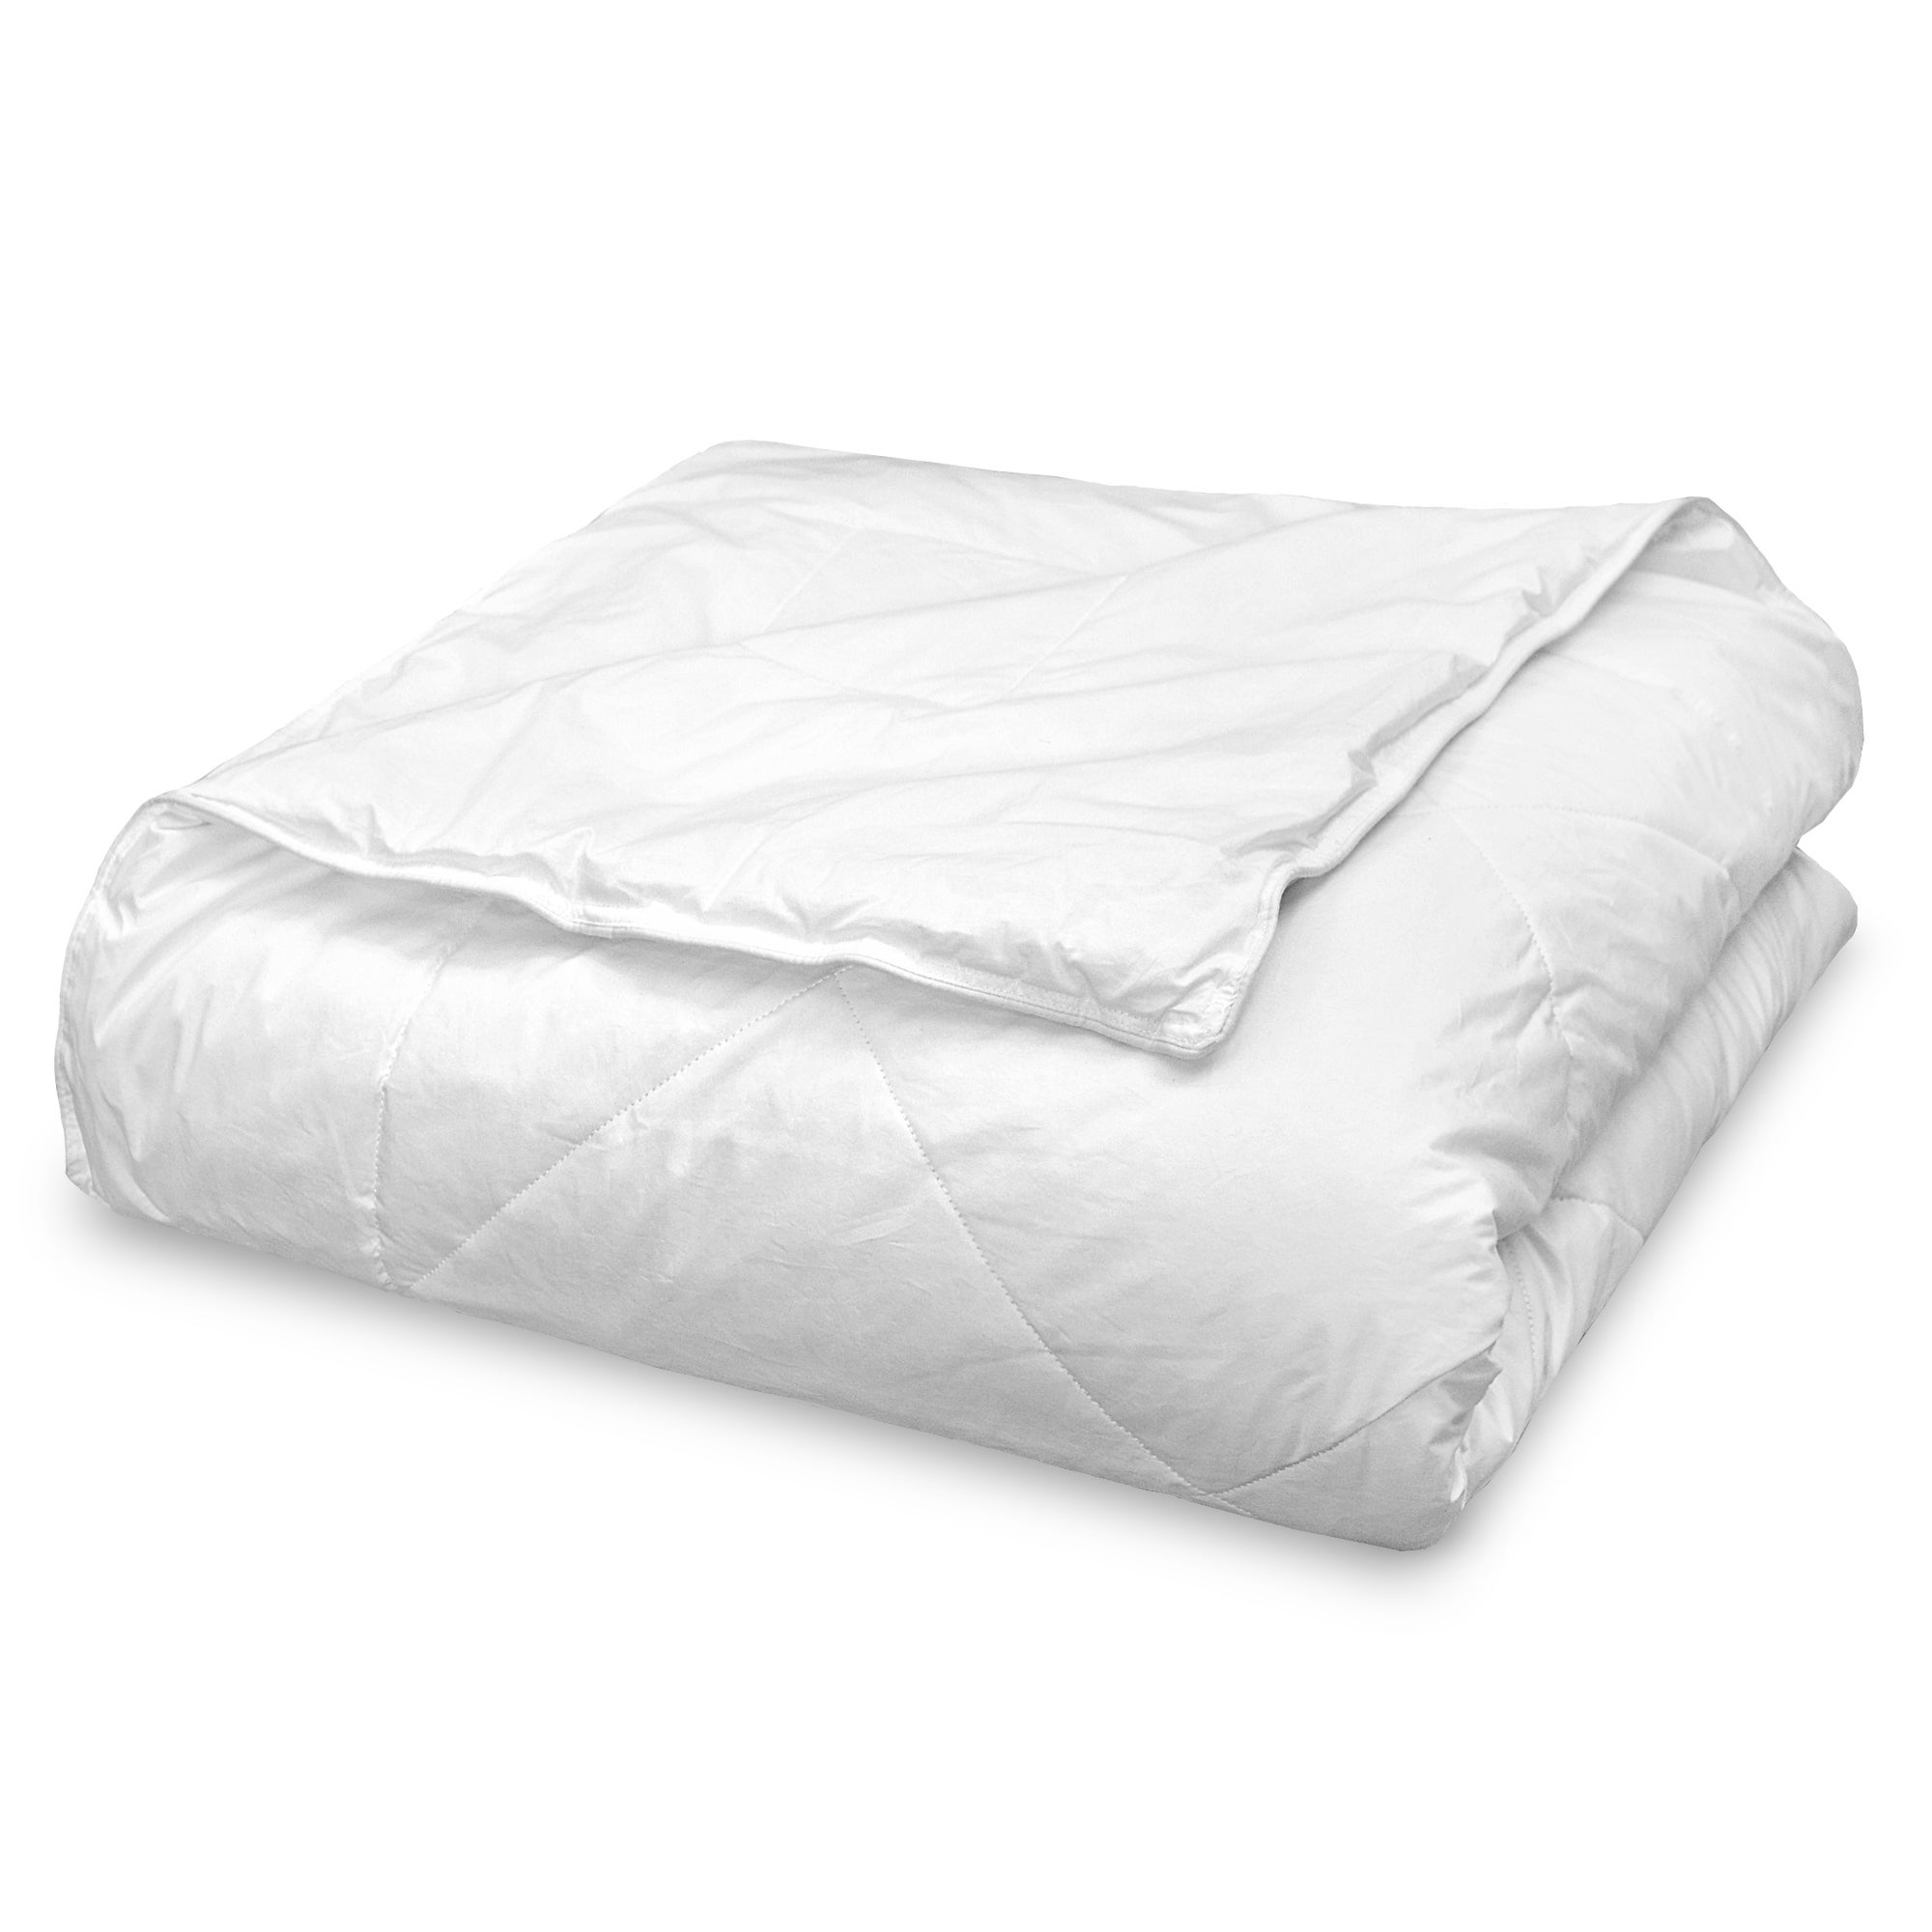 cozyearth earth comforter mulberry cozy products silk